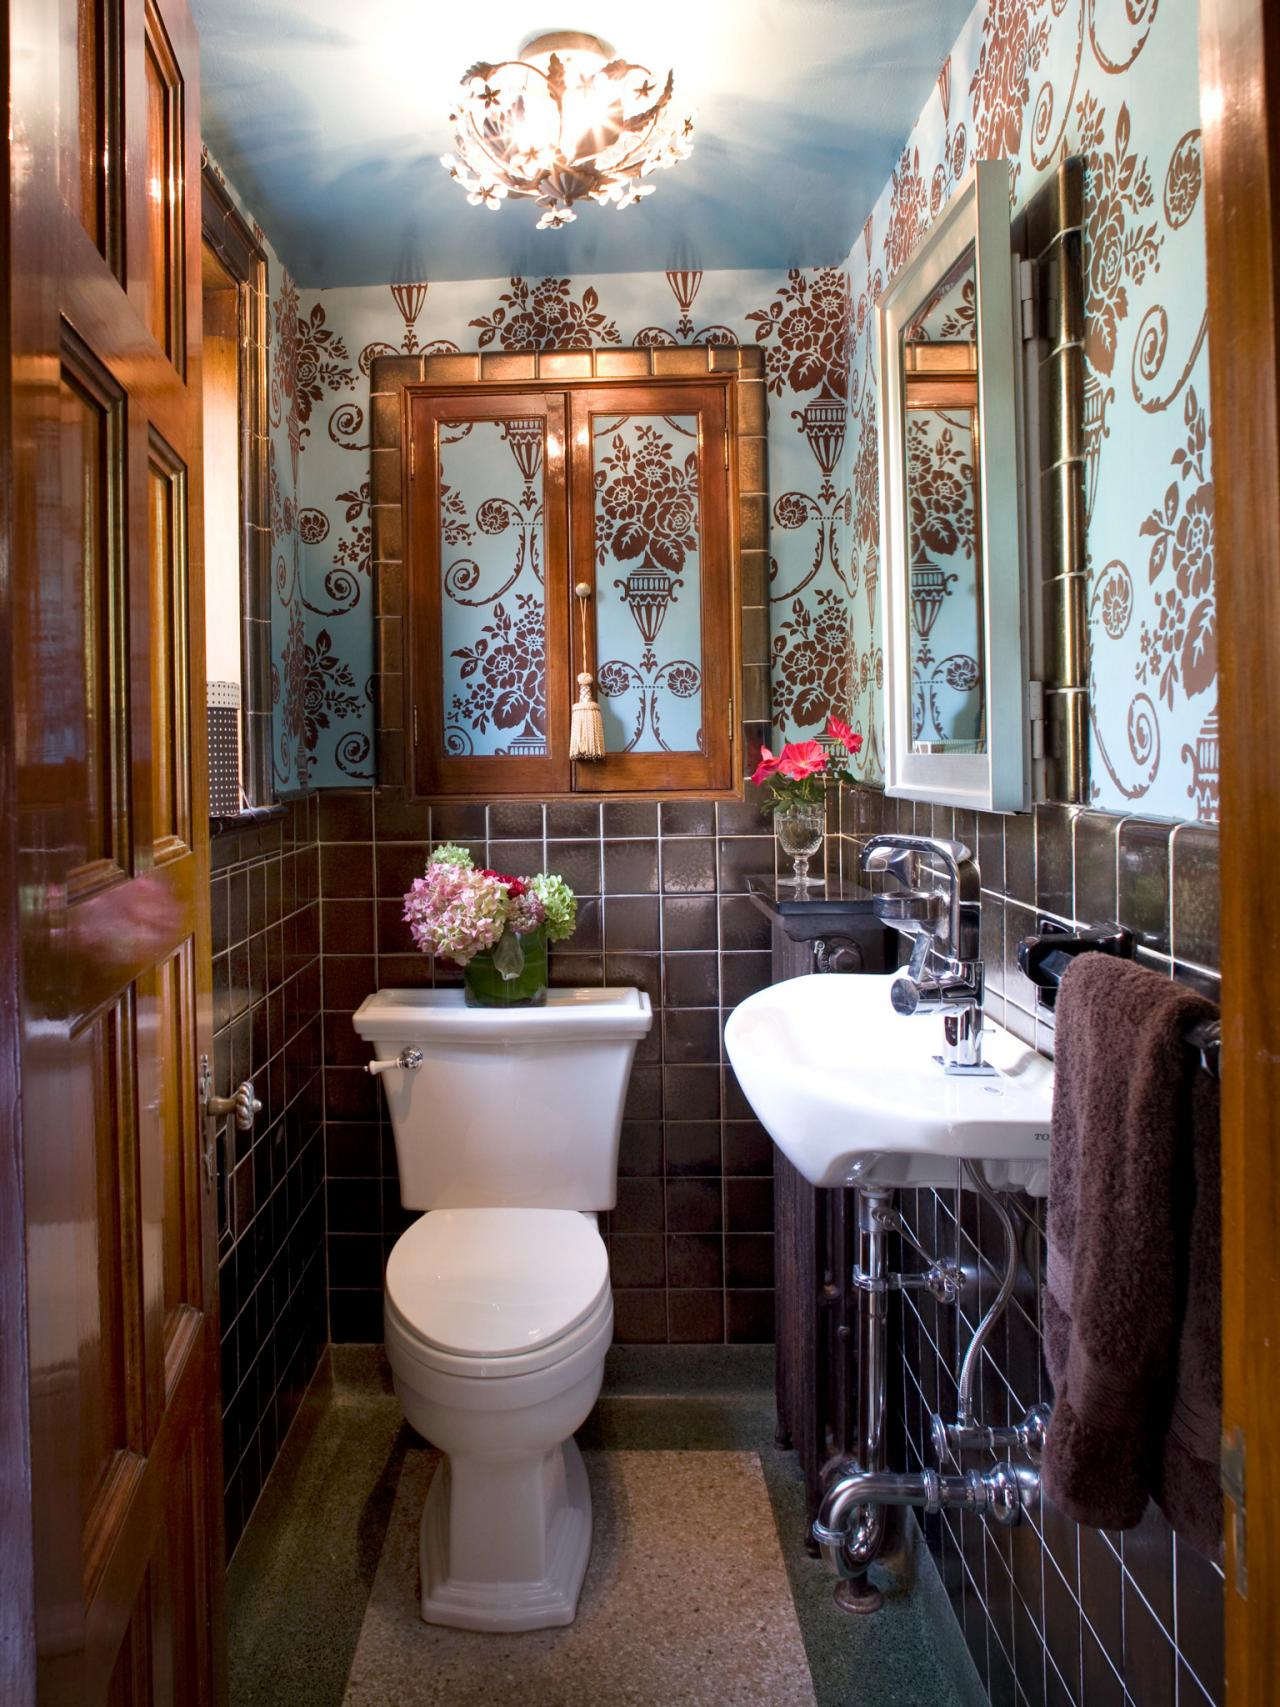 Decorating Bathrooms bathroom decorating tips & ideas + pictures from hgtv | hgtv